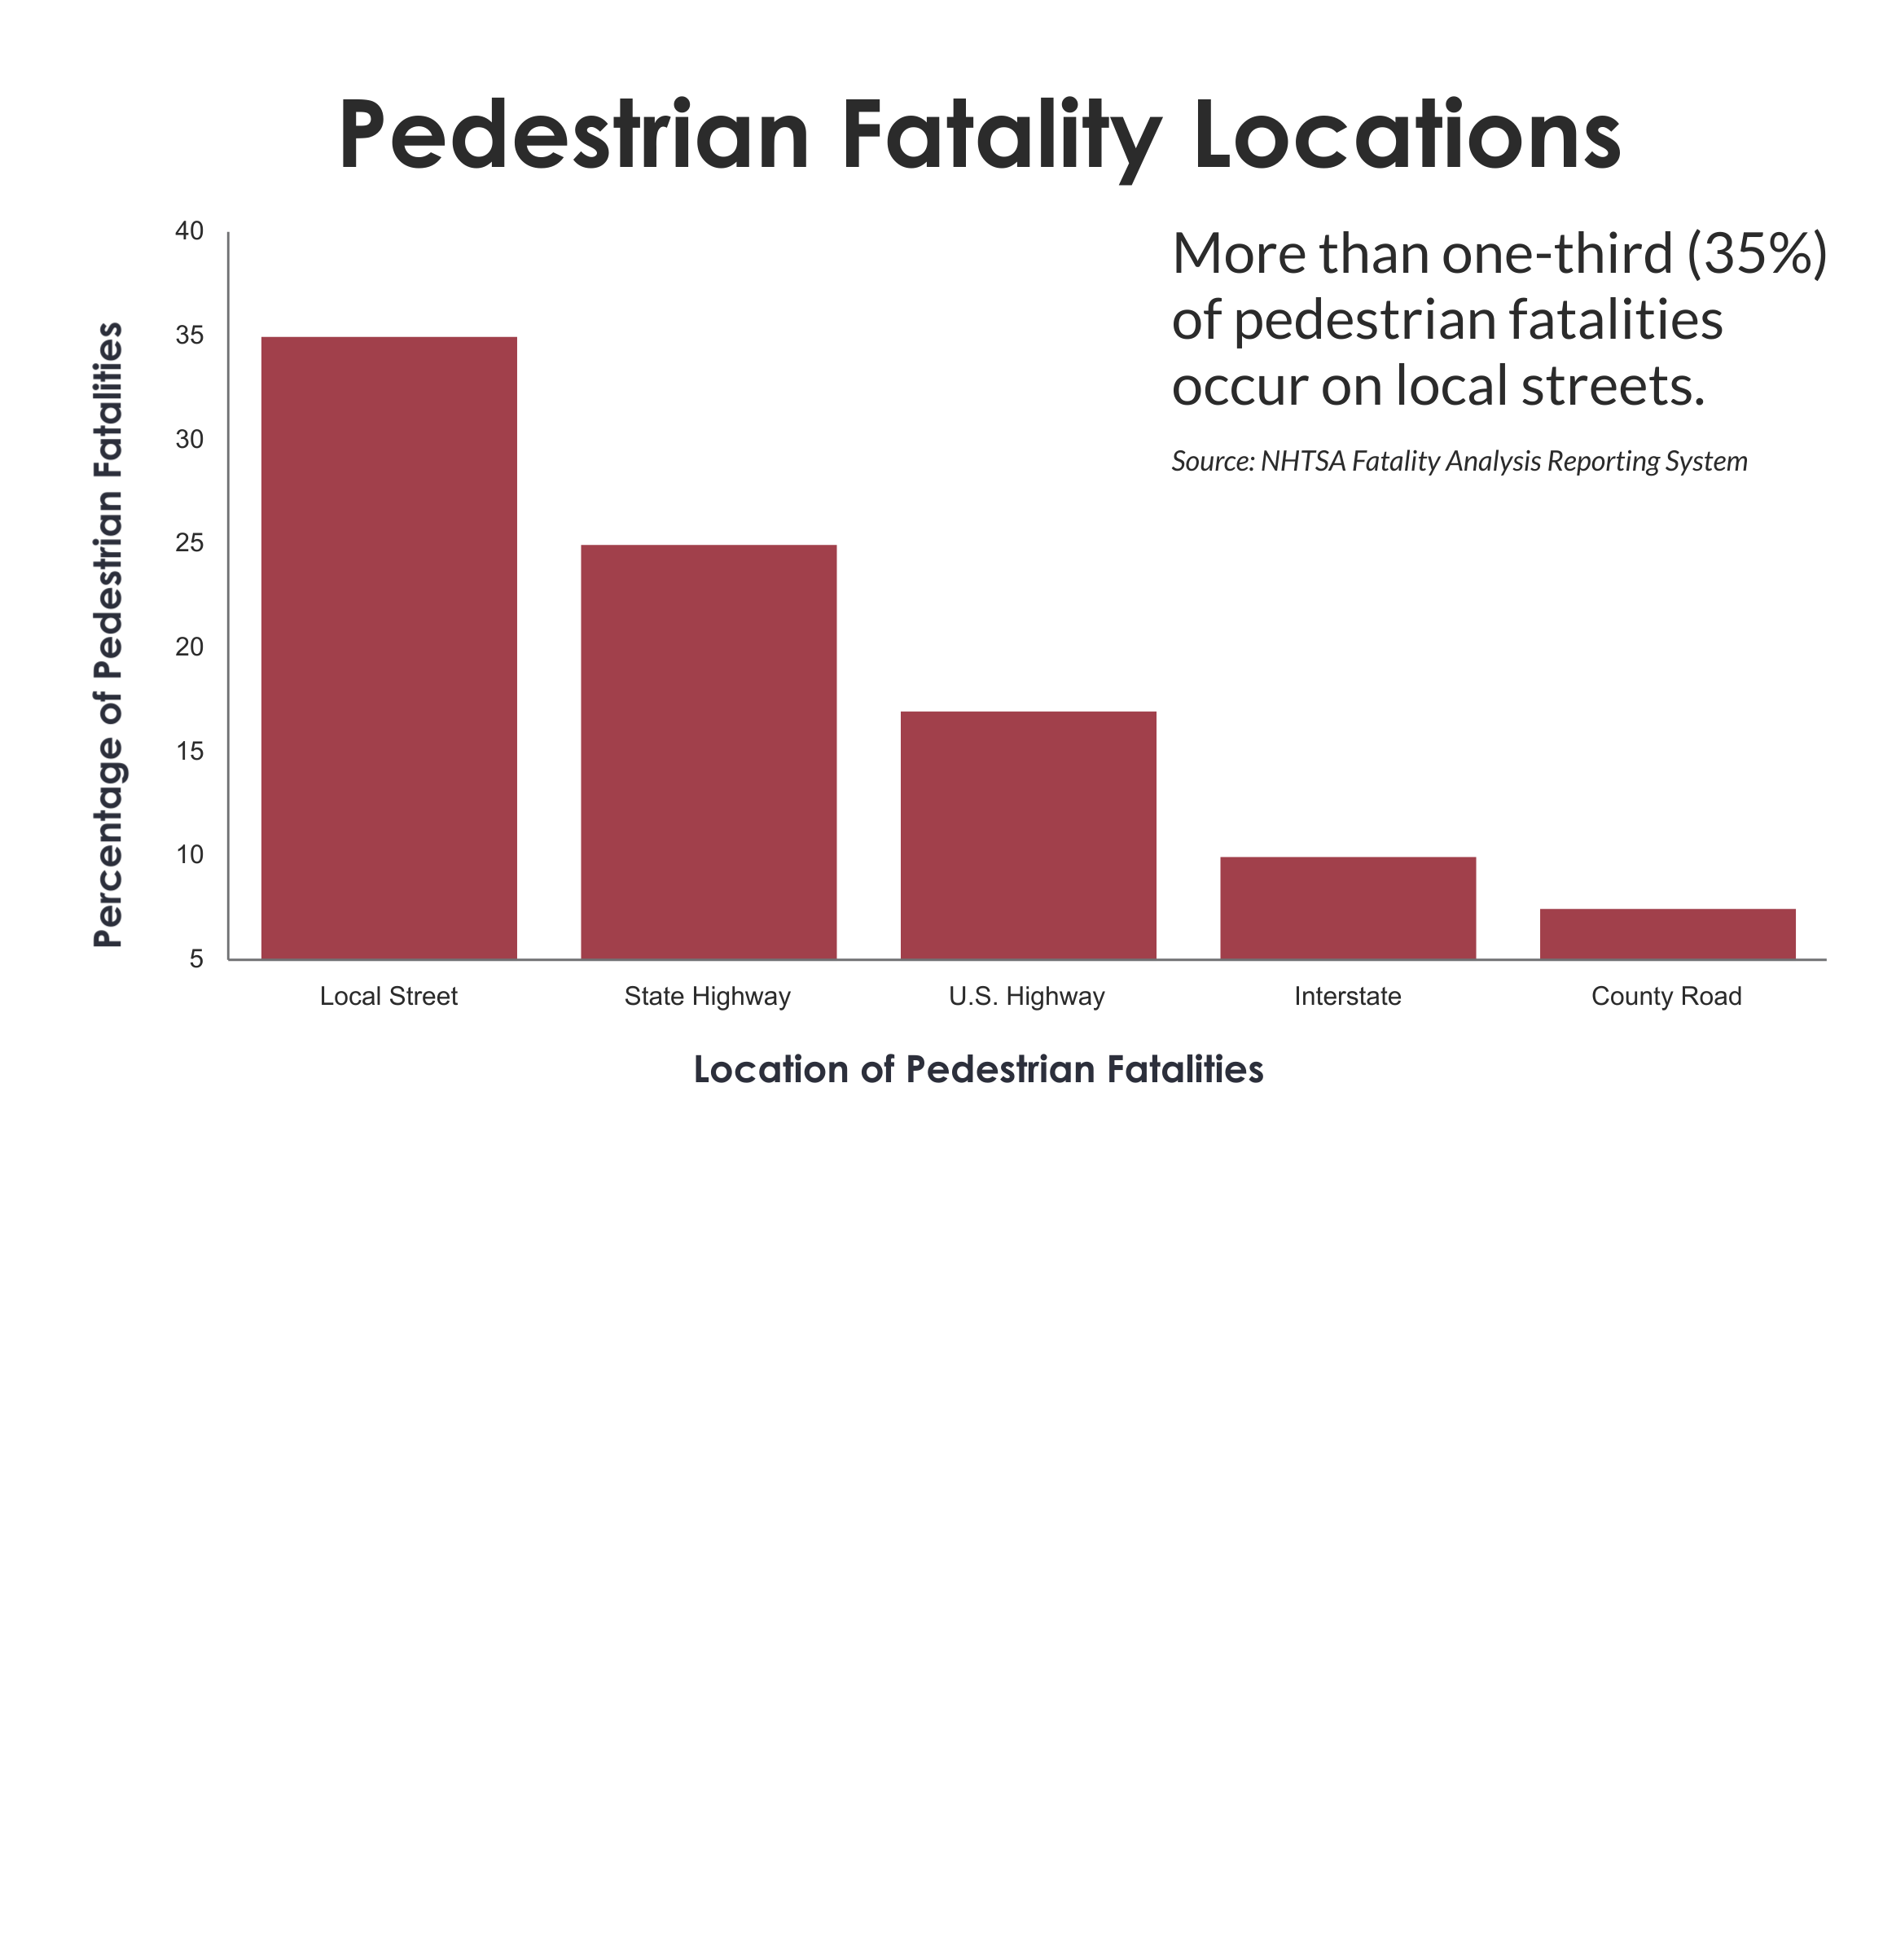 Chart showing that more than one third of pedestrian fatlalities occur on local streets.